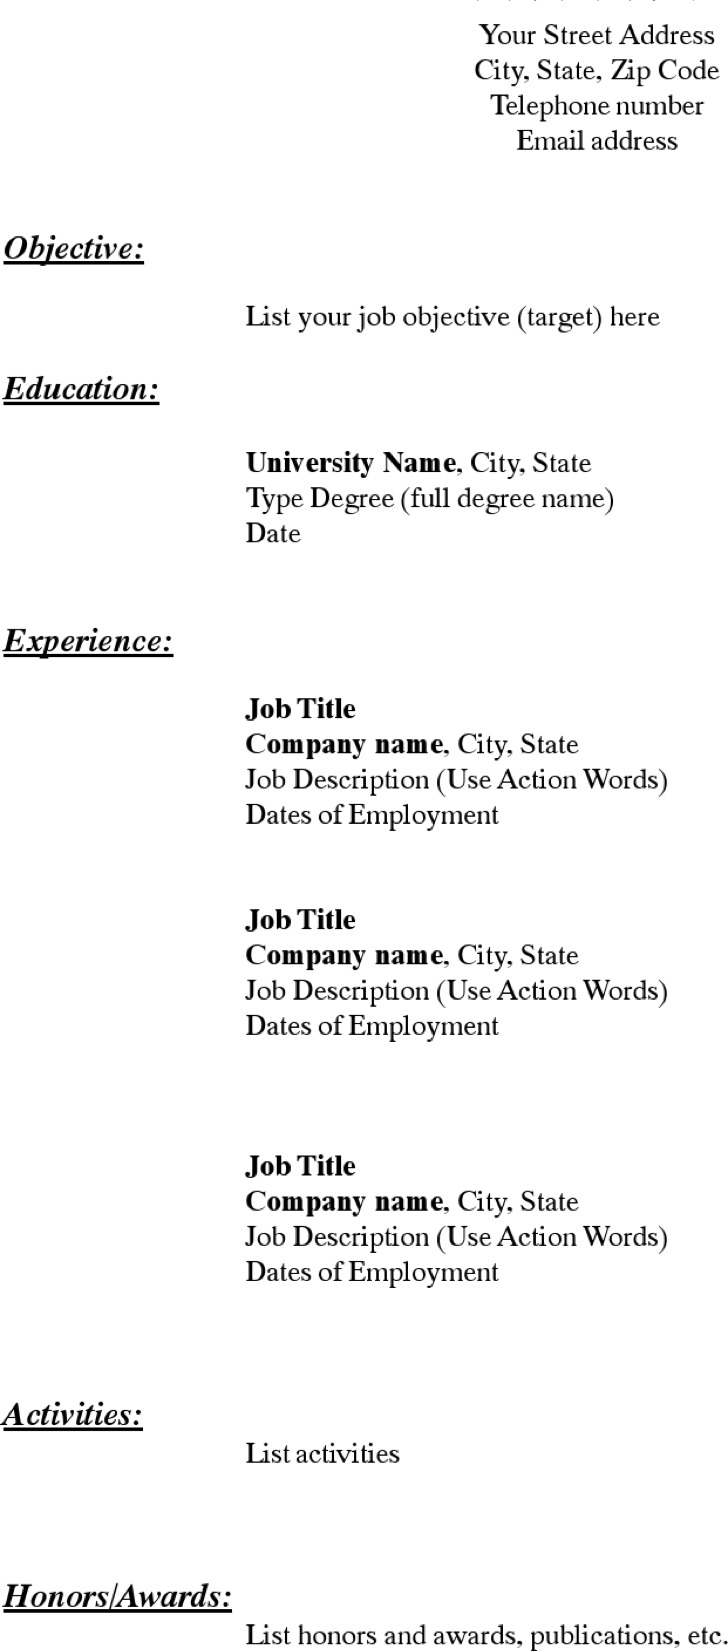 Download Blank Resume Templates for Free  TidyTemplates